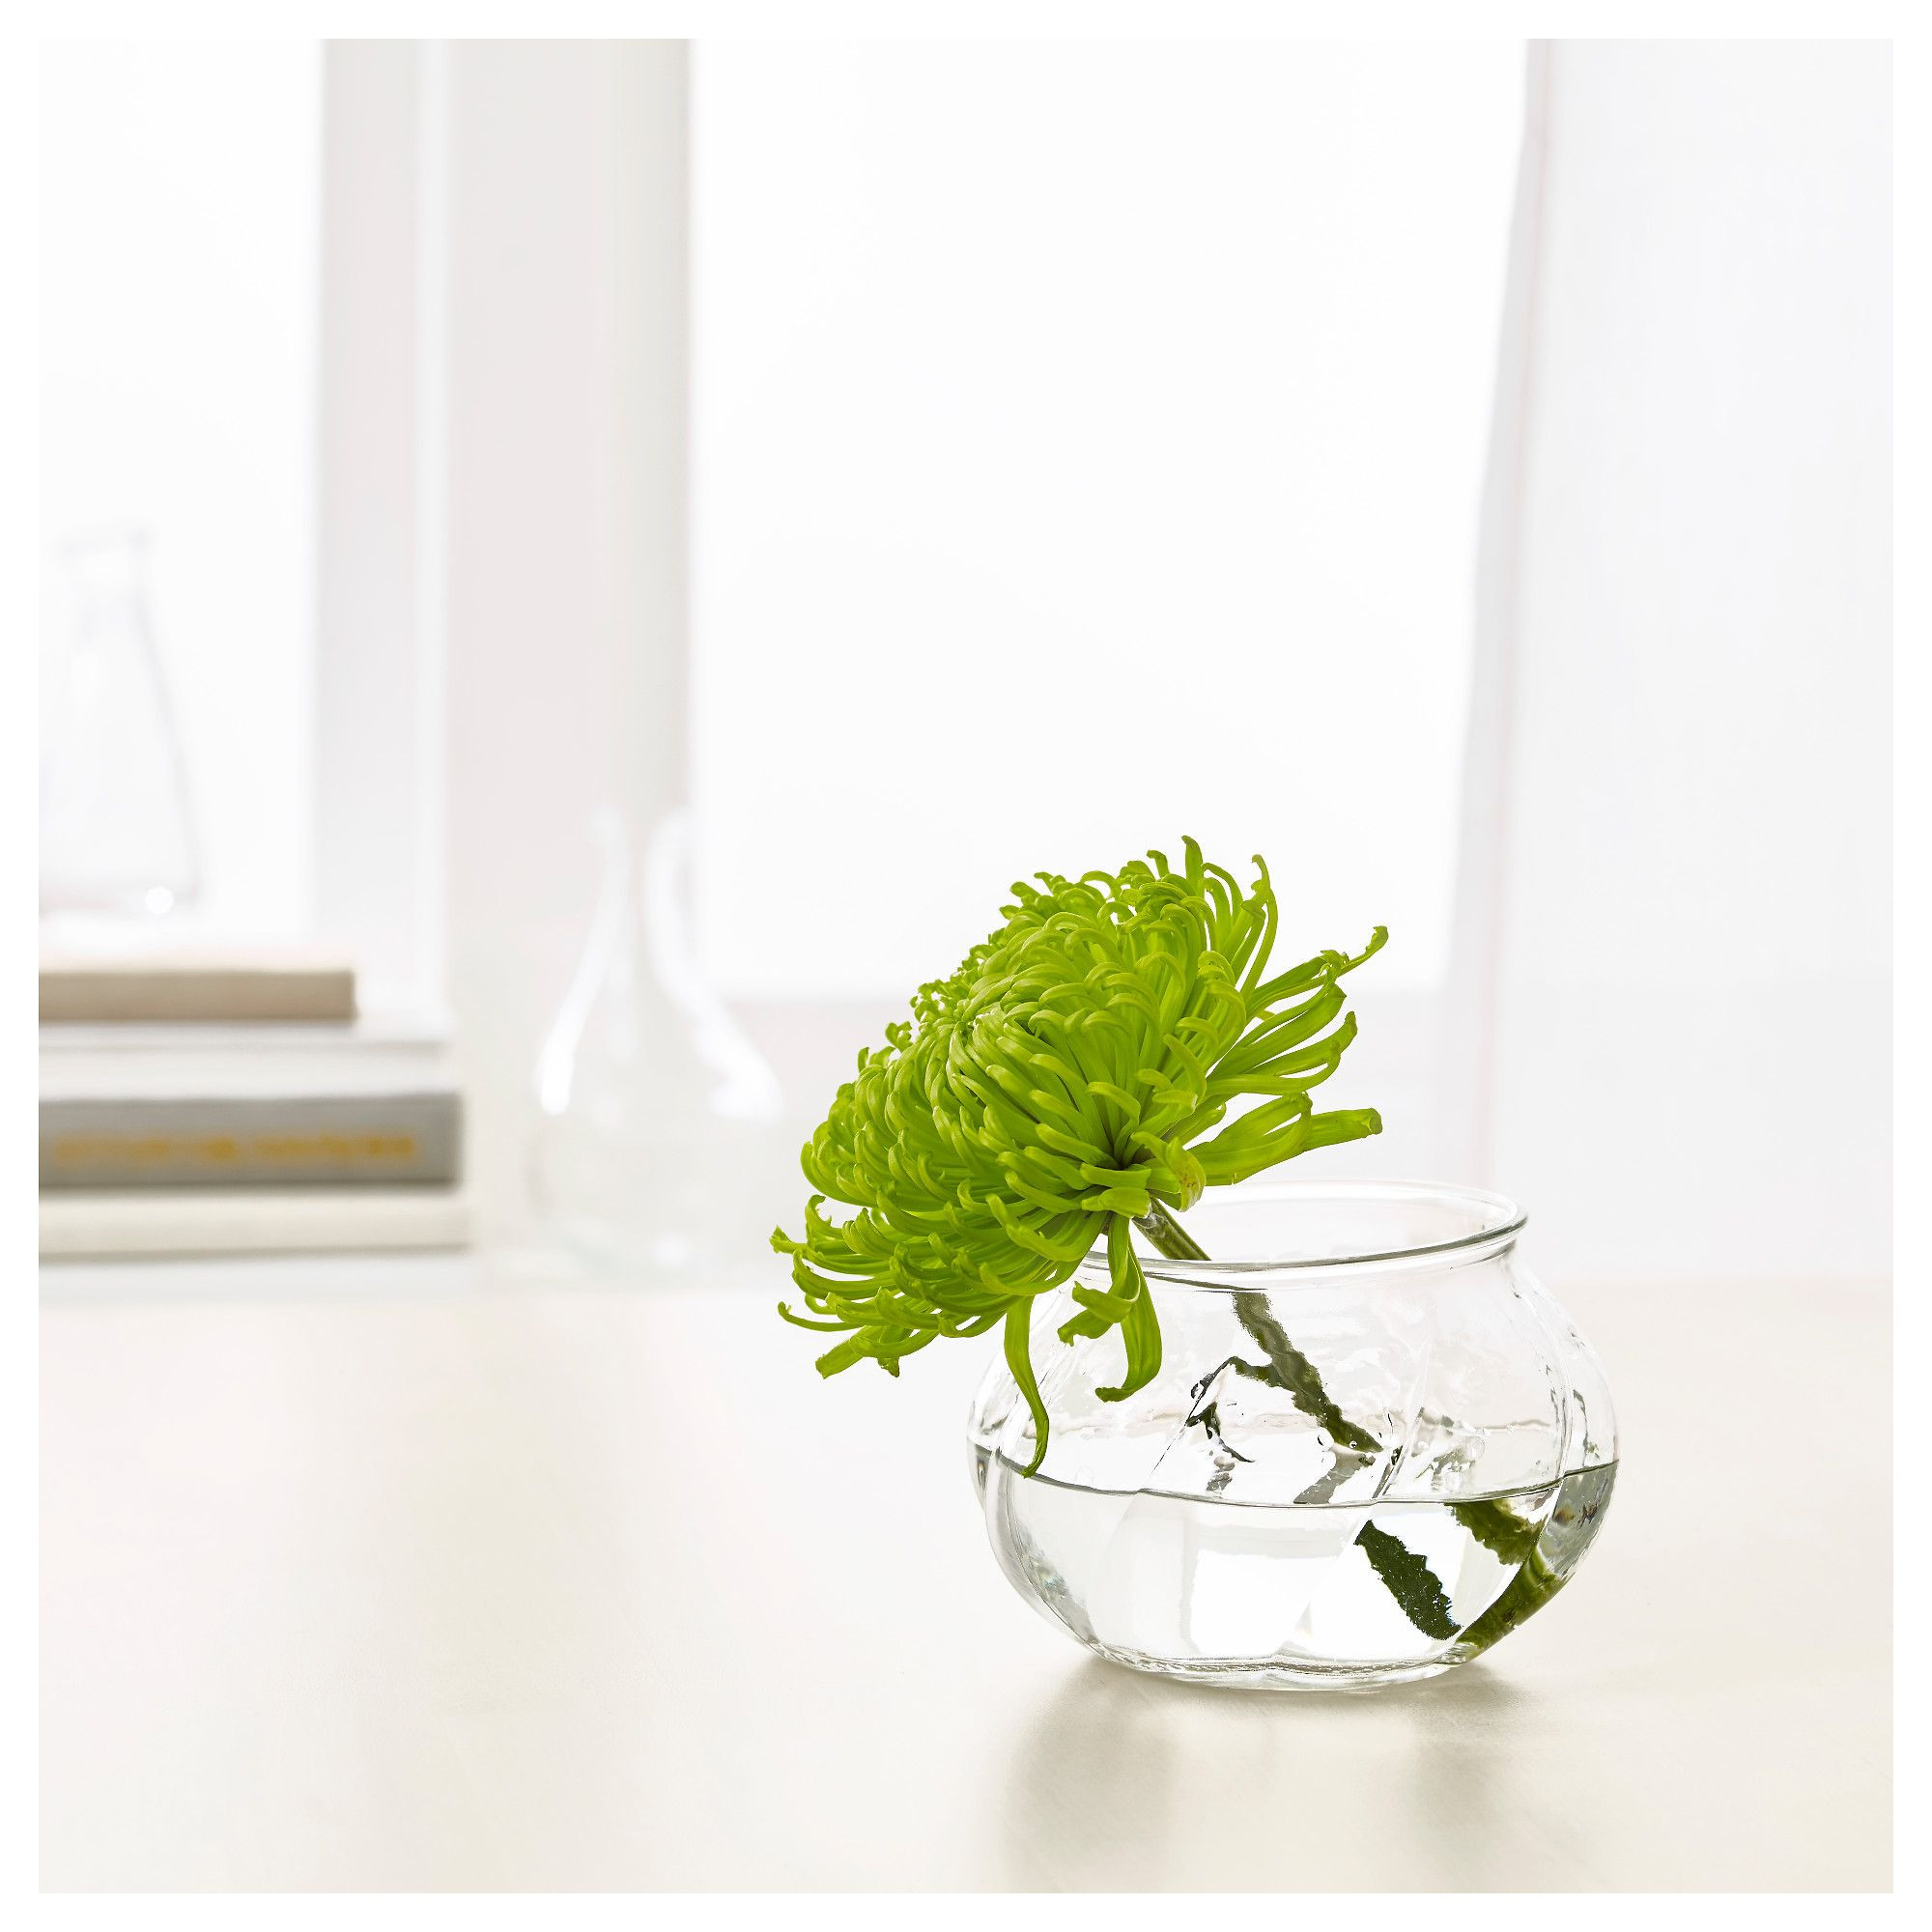 ikea flower vase of ikea viljestark vase clear glass mehr giah pinterest regarding ikea viljestark vase clear glass